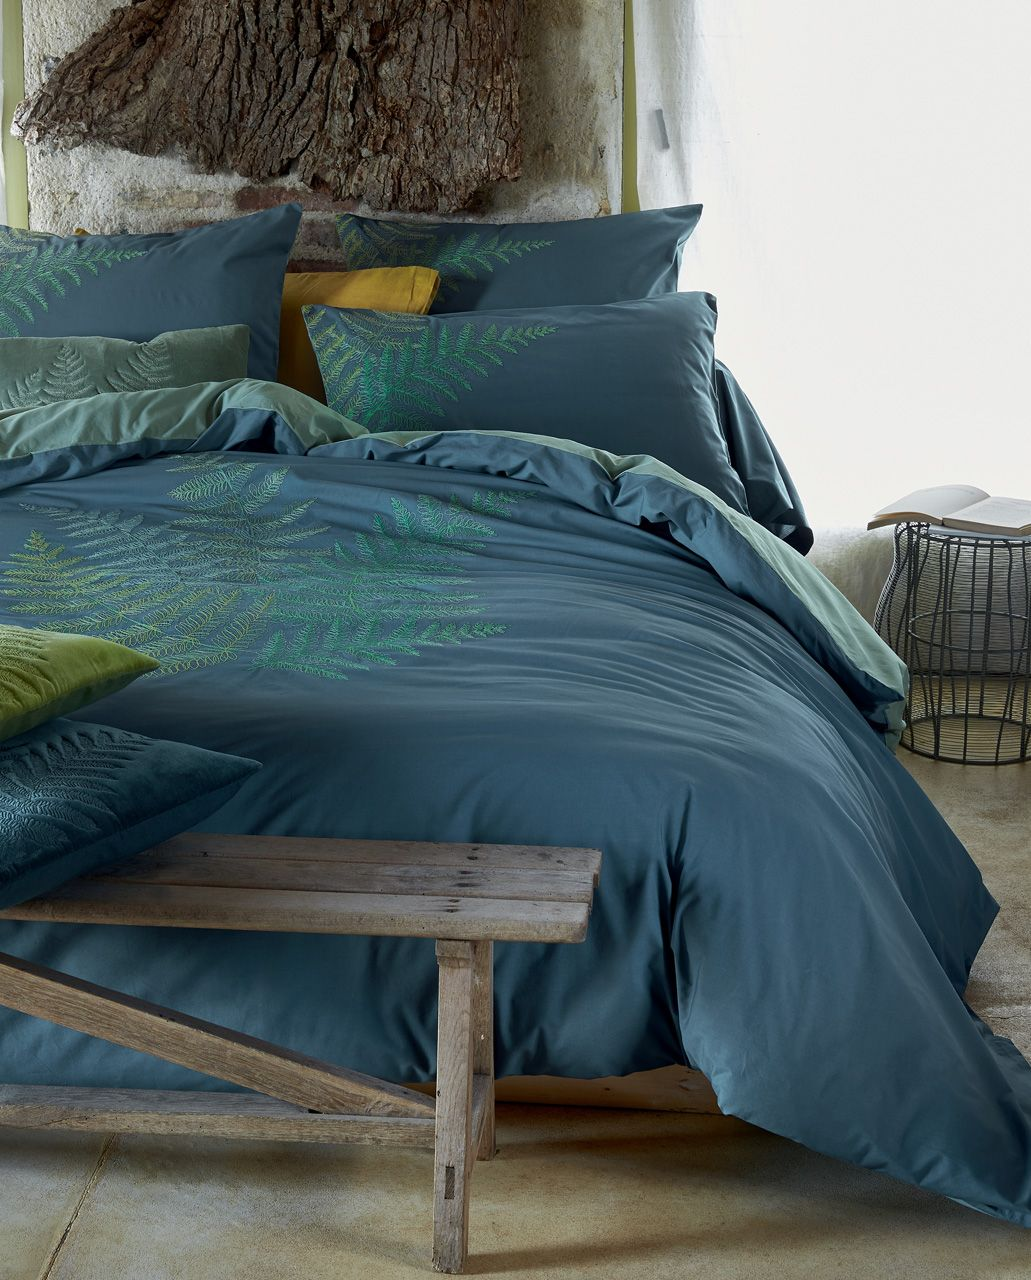 housse de couette ecrin broderies foug res v g tal bleu percale 160x210. Black Bedroom Furniture Sets. Home Design Ideas